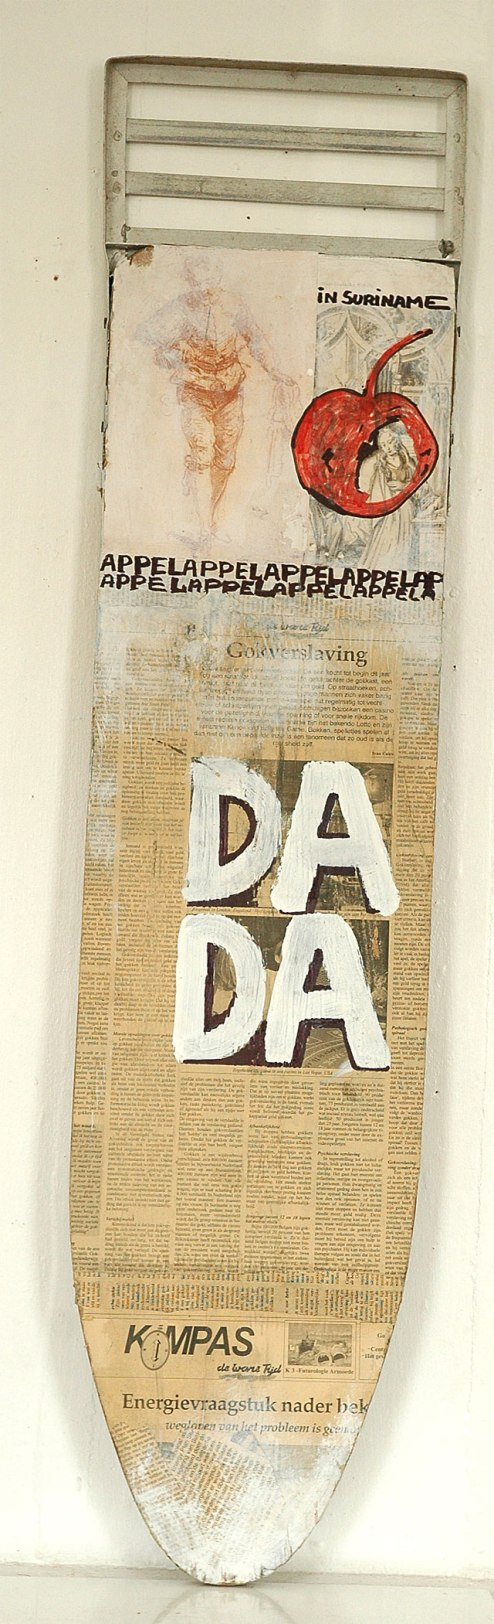 Kurt Nahar, 'Dada en de appel I', mixed media  on wood, 30x125x3cm, 2008  - USD 250 / PHOTO Readytex Art Gallery/William Tsang